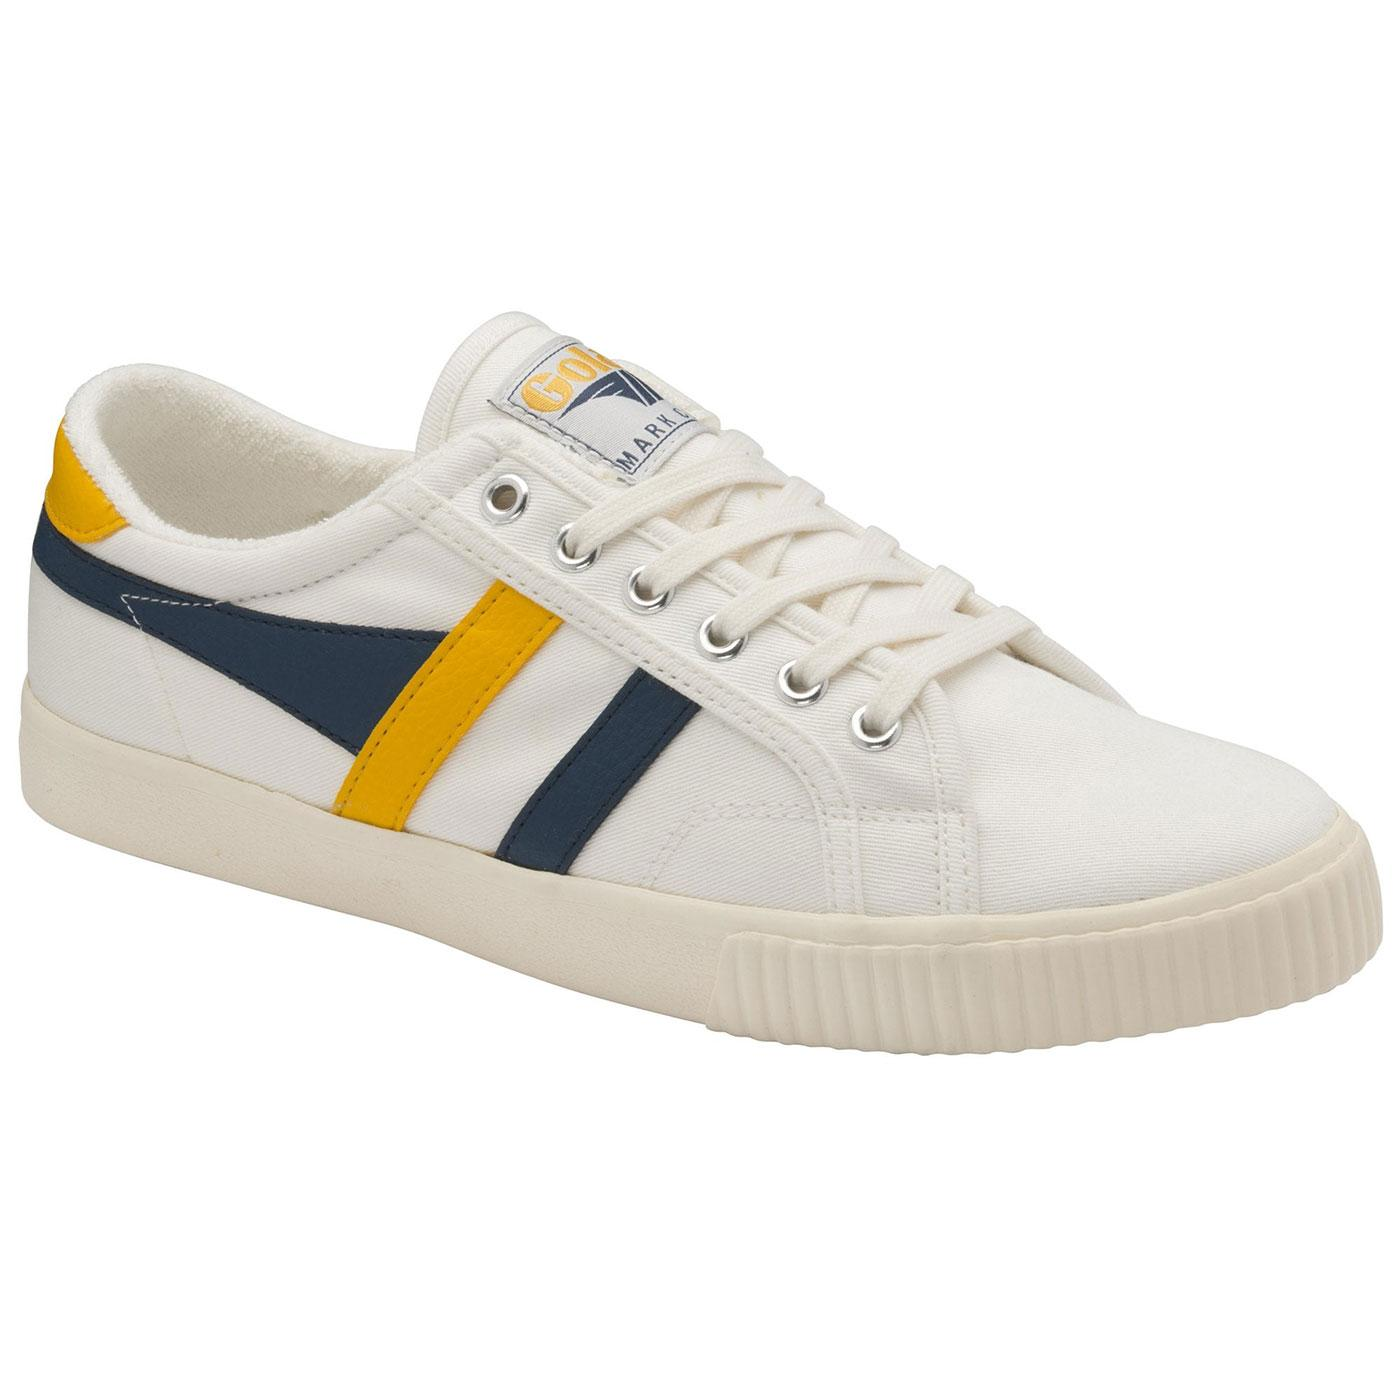 GOLA Tennis Mark Cox Retro Trainers OFF WHITE/SUN